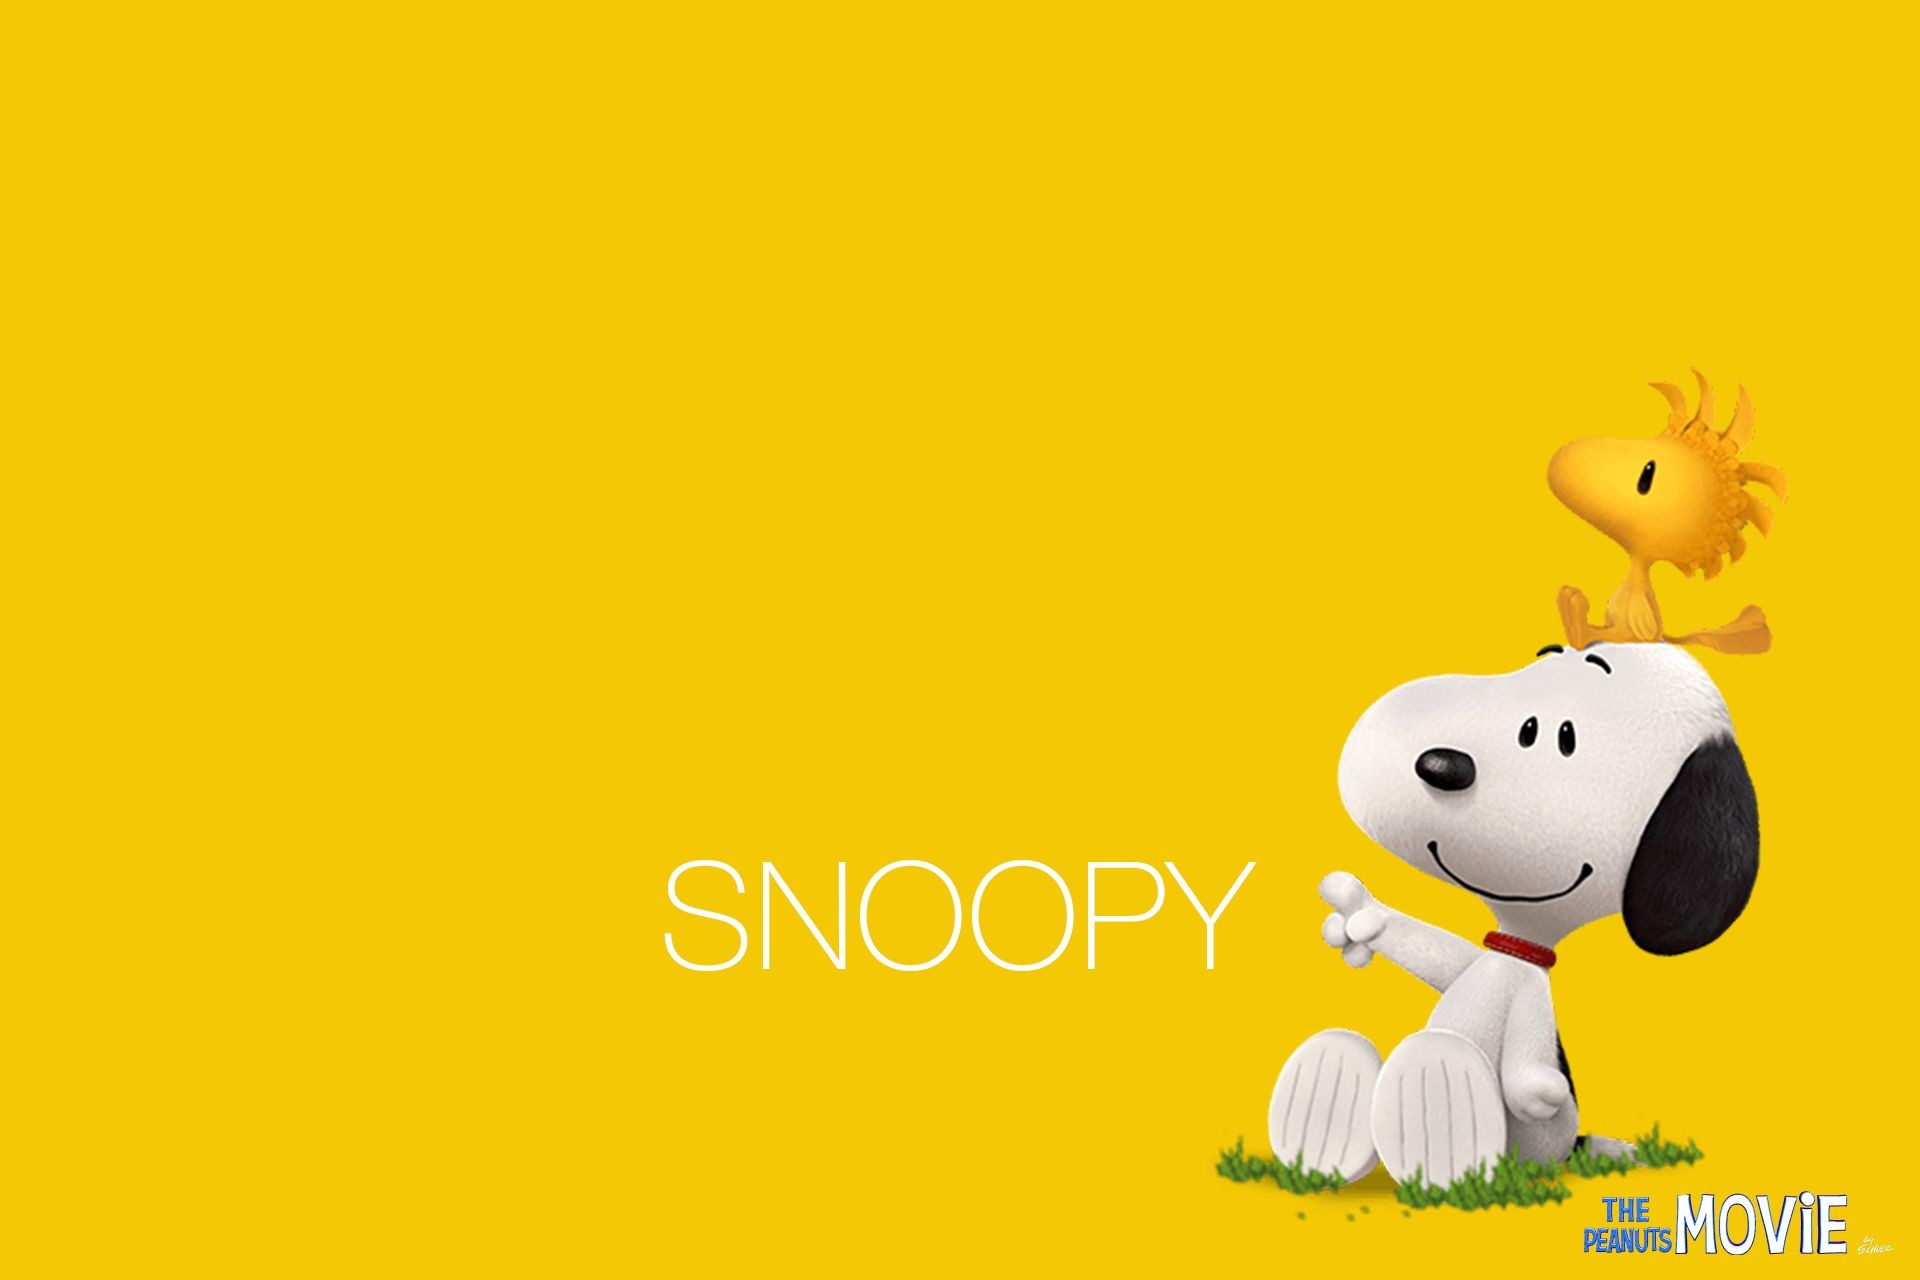 Snoopy Dancing Wallpapers Hd Wallpaper Collections 4kwallpaper